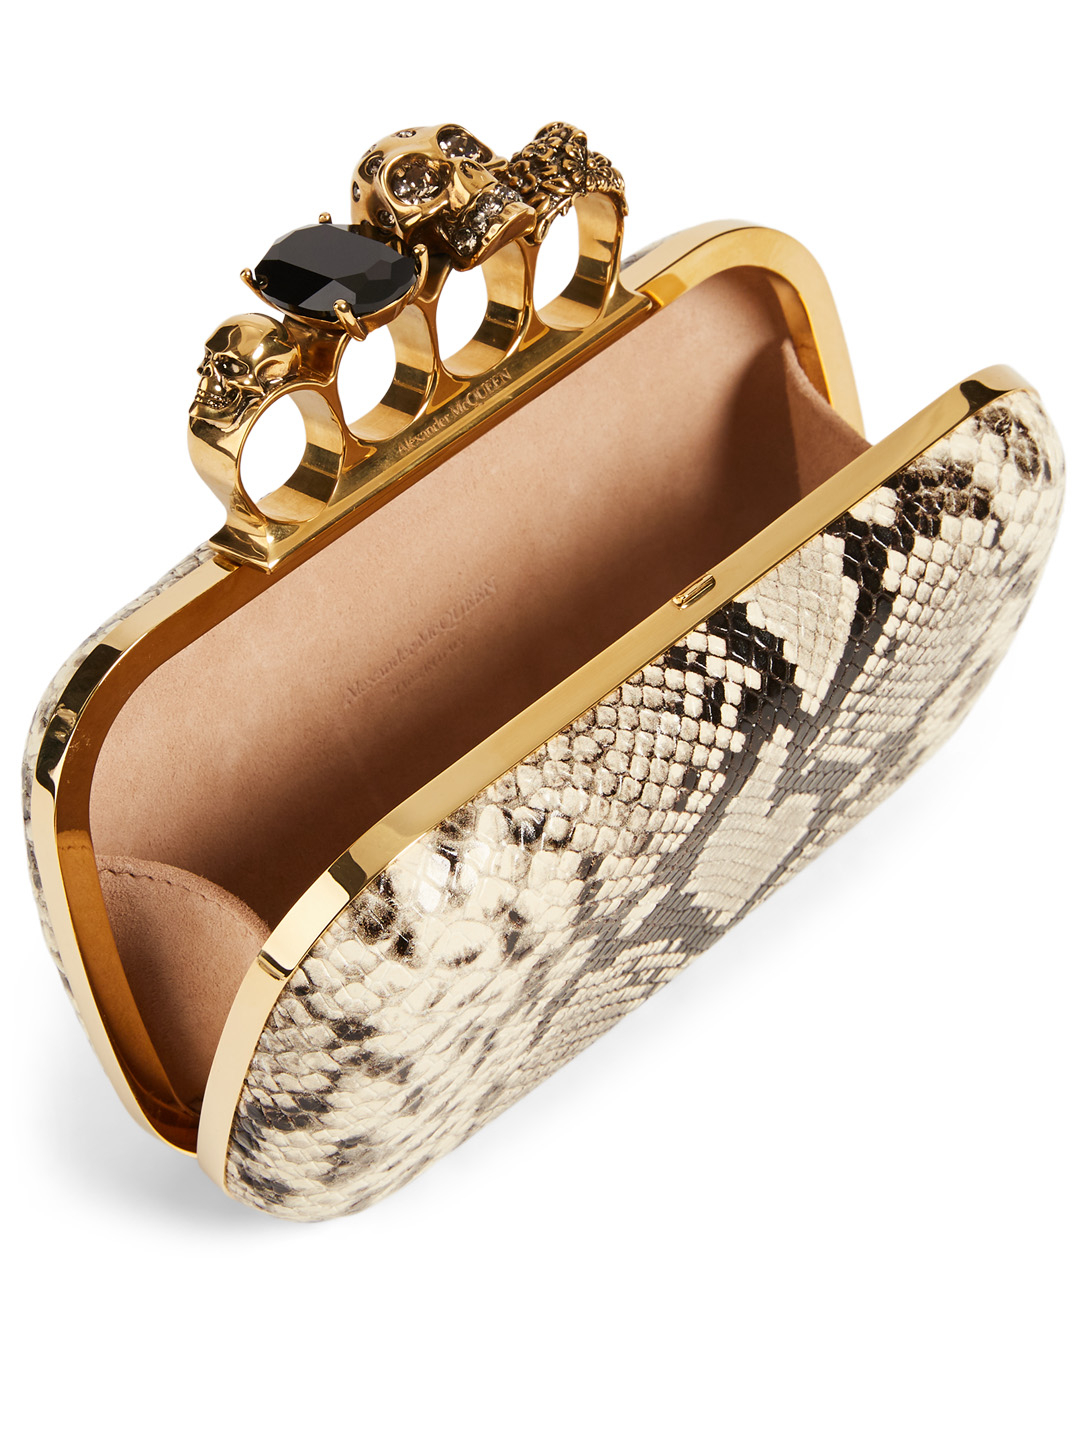 ALEXANDER MCQUEEN Leather Four-Ring Box Clutch Bag In Snake Print With Crystals Women's Neutral